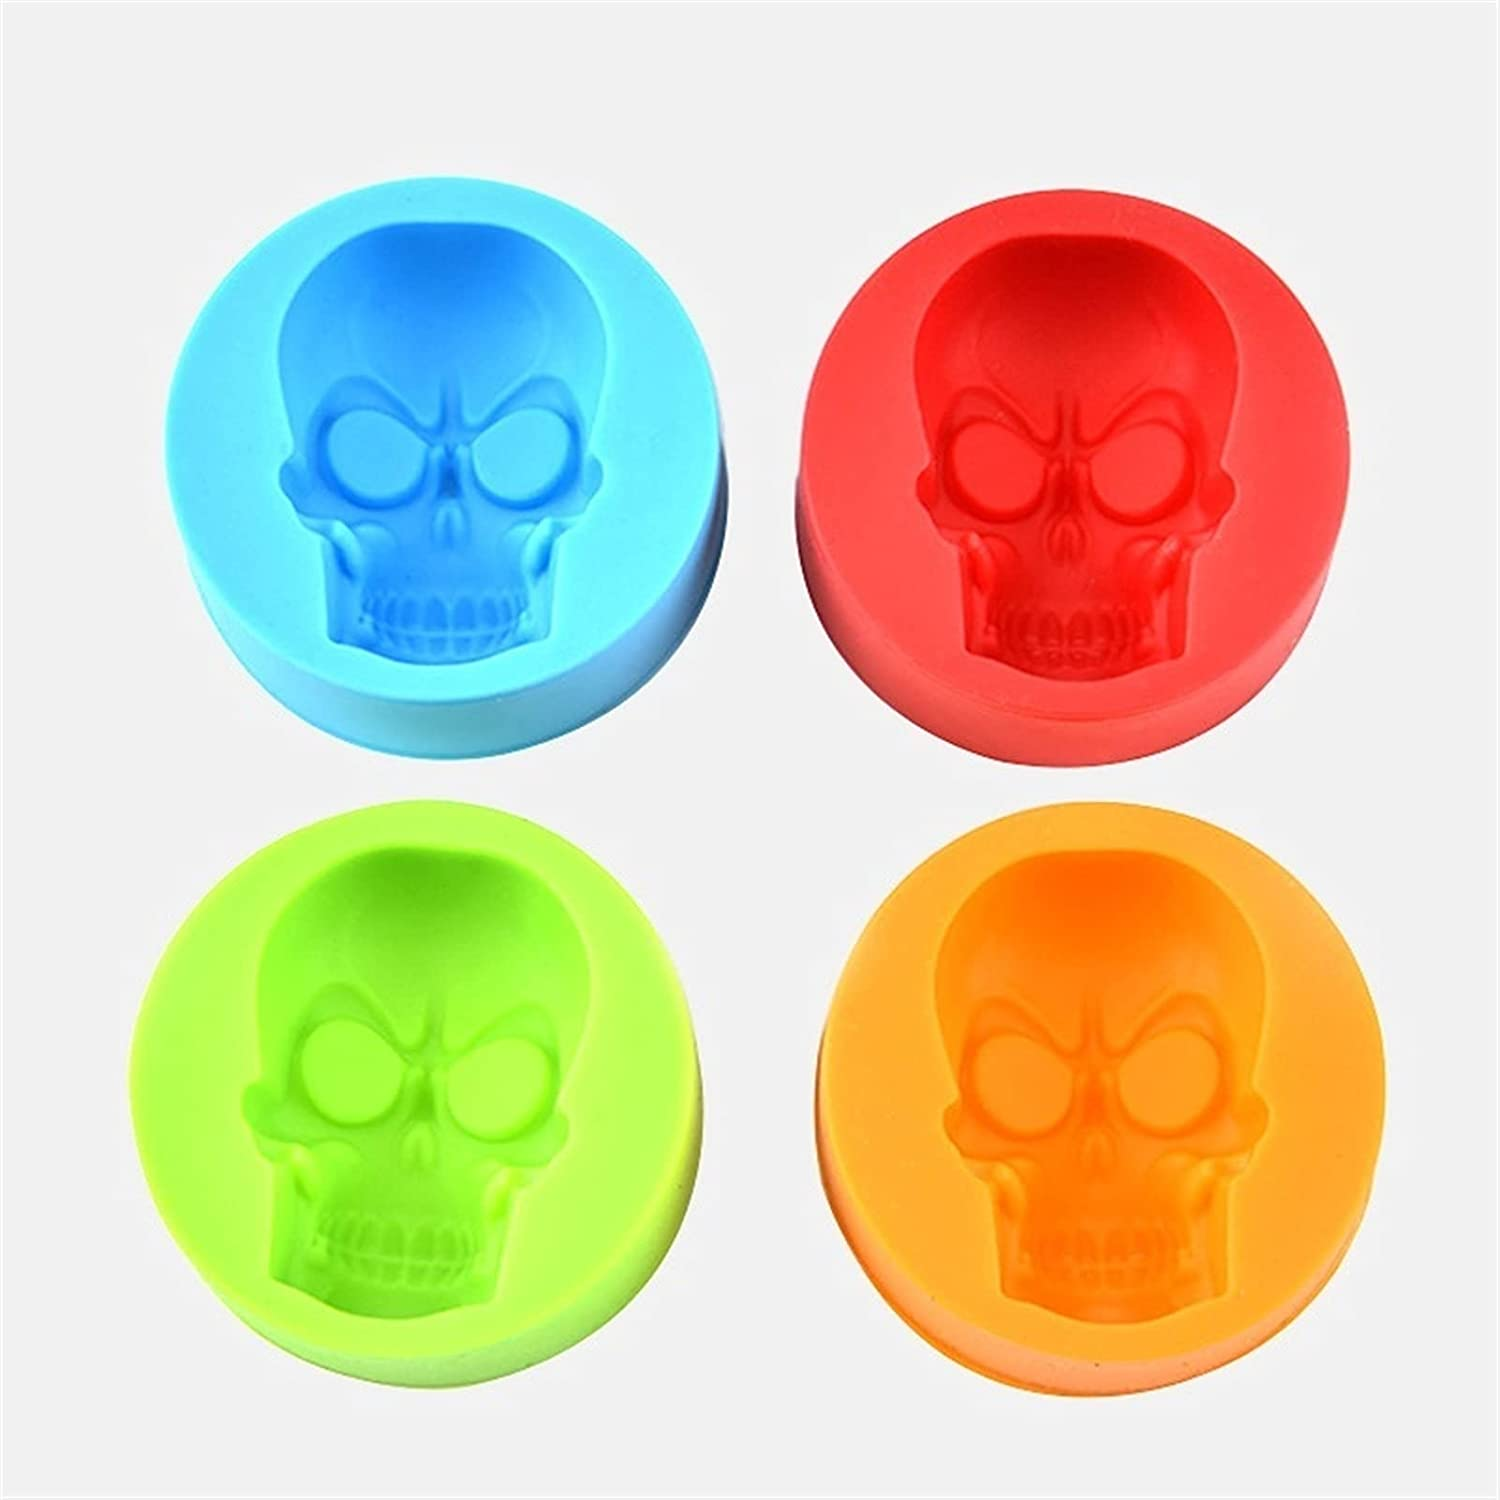 shop HXXgiefg Skull Shaped 3D Animer and price revision Mold Ice Maker Cube Tra Chocolate Mould